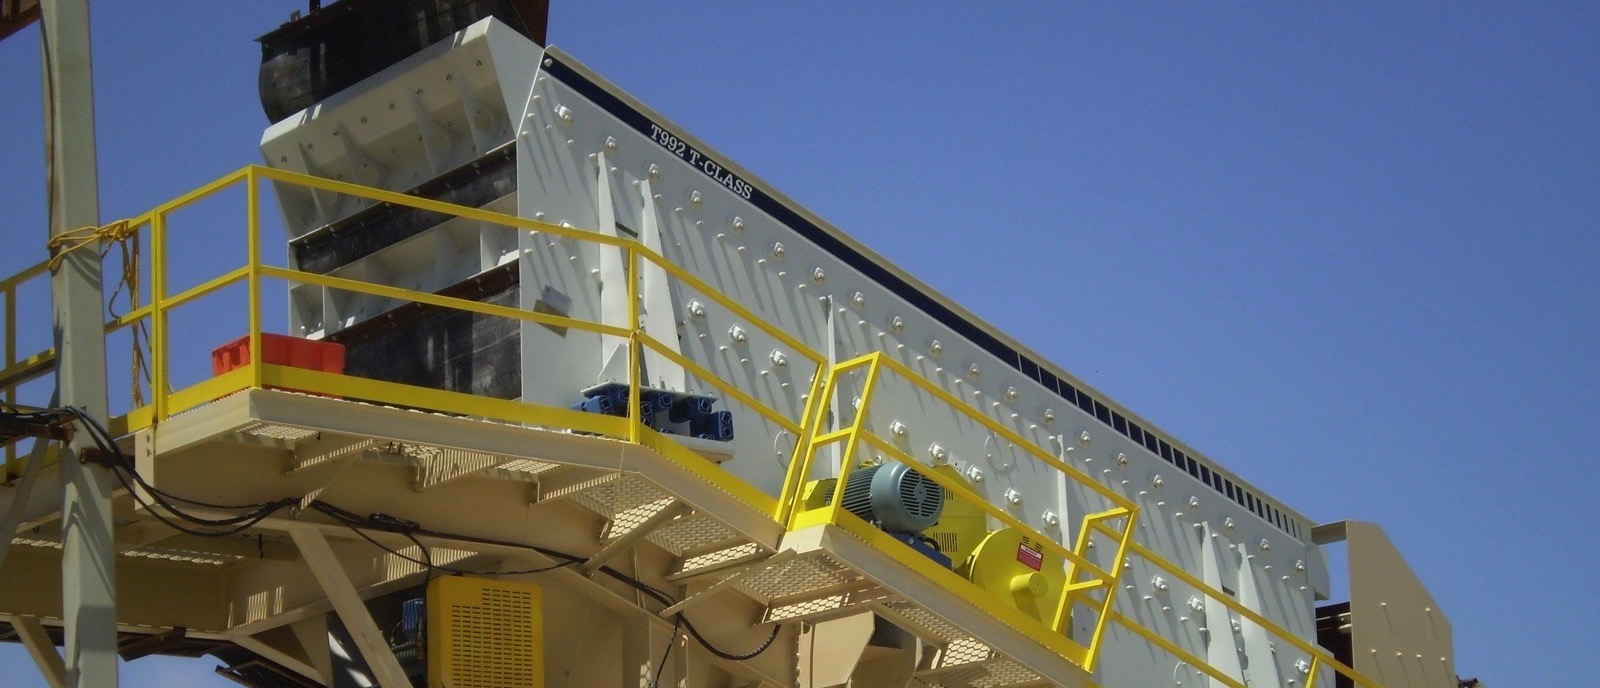 Haver & Boecker: T-Class Vibrating Screen Customizations for wide Range of Applications